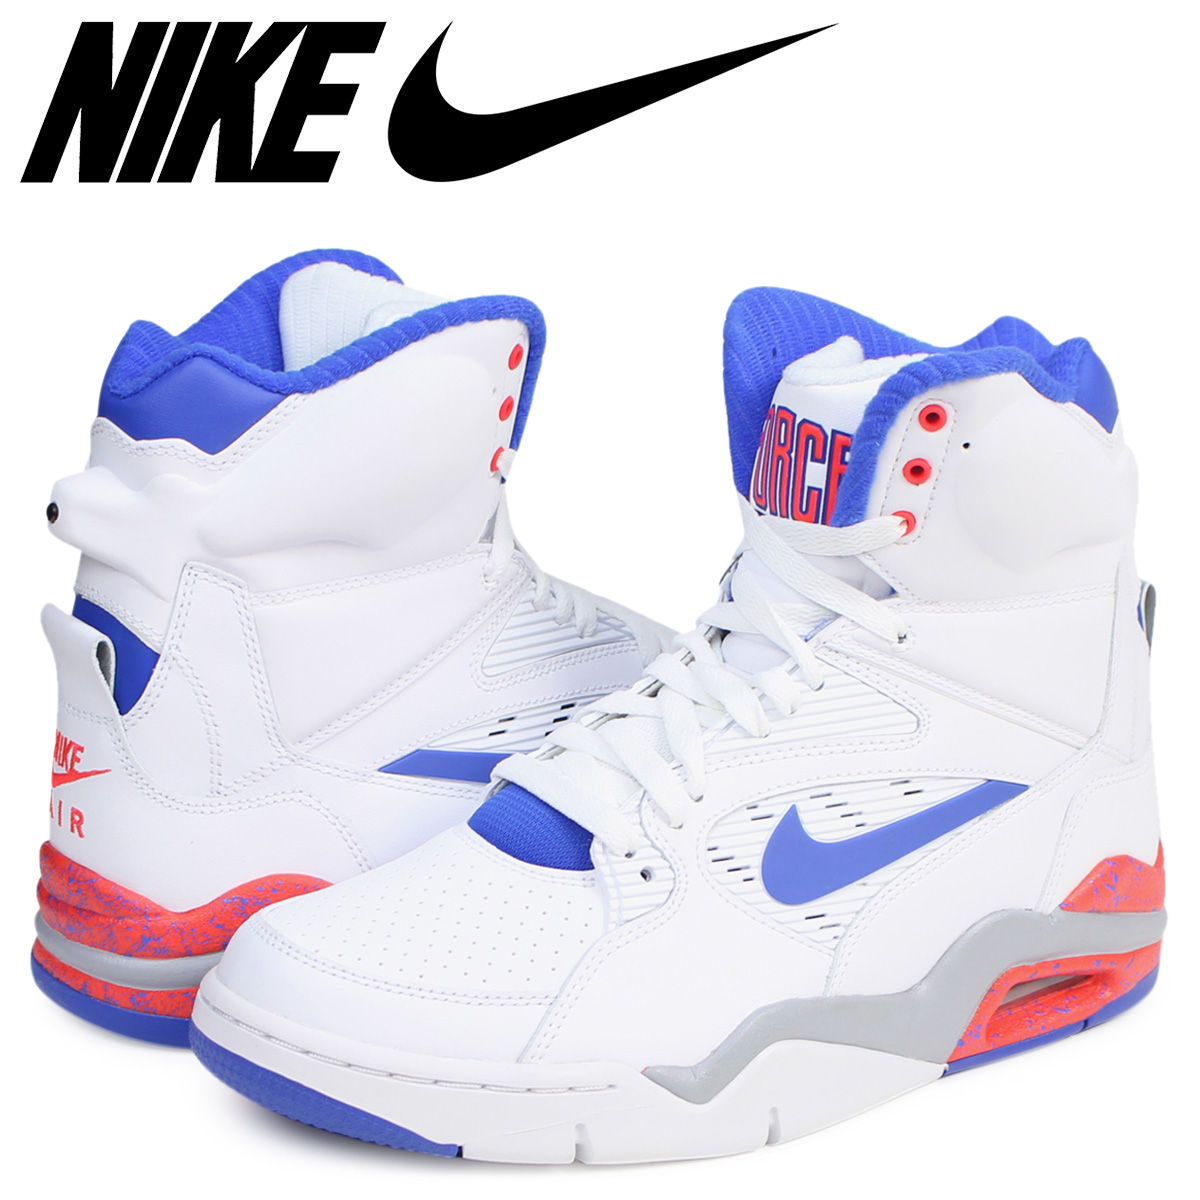 NIKE Nike air command force sneakers AIR COMMAND FORCE 684,715 101 men's shoes ultramarine blue white white